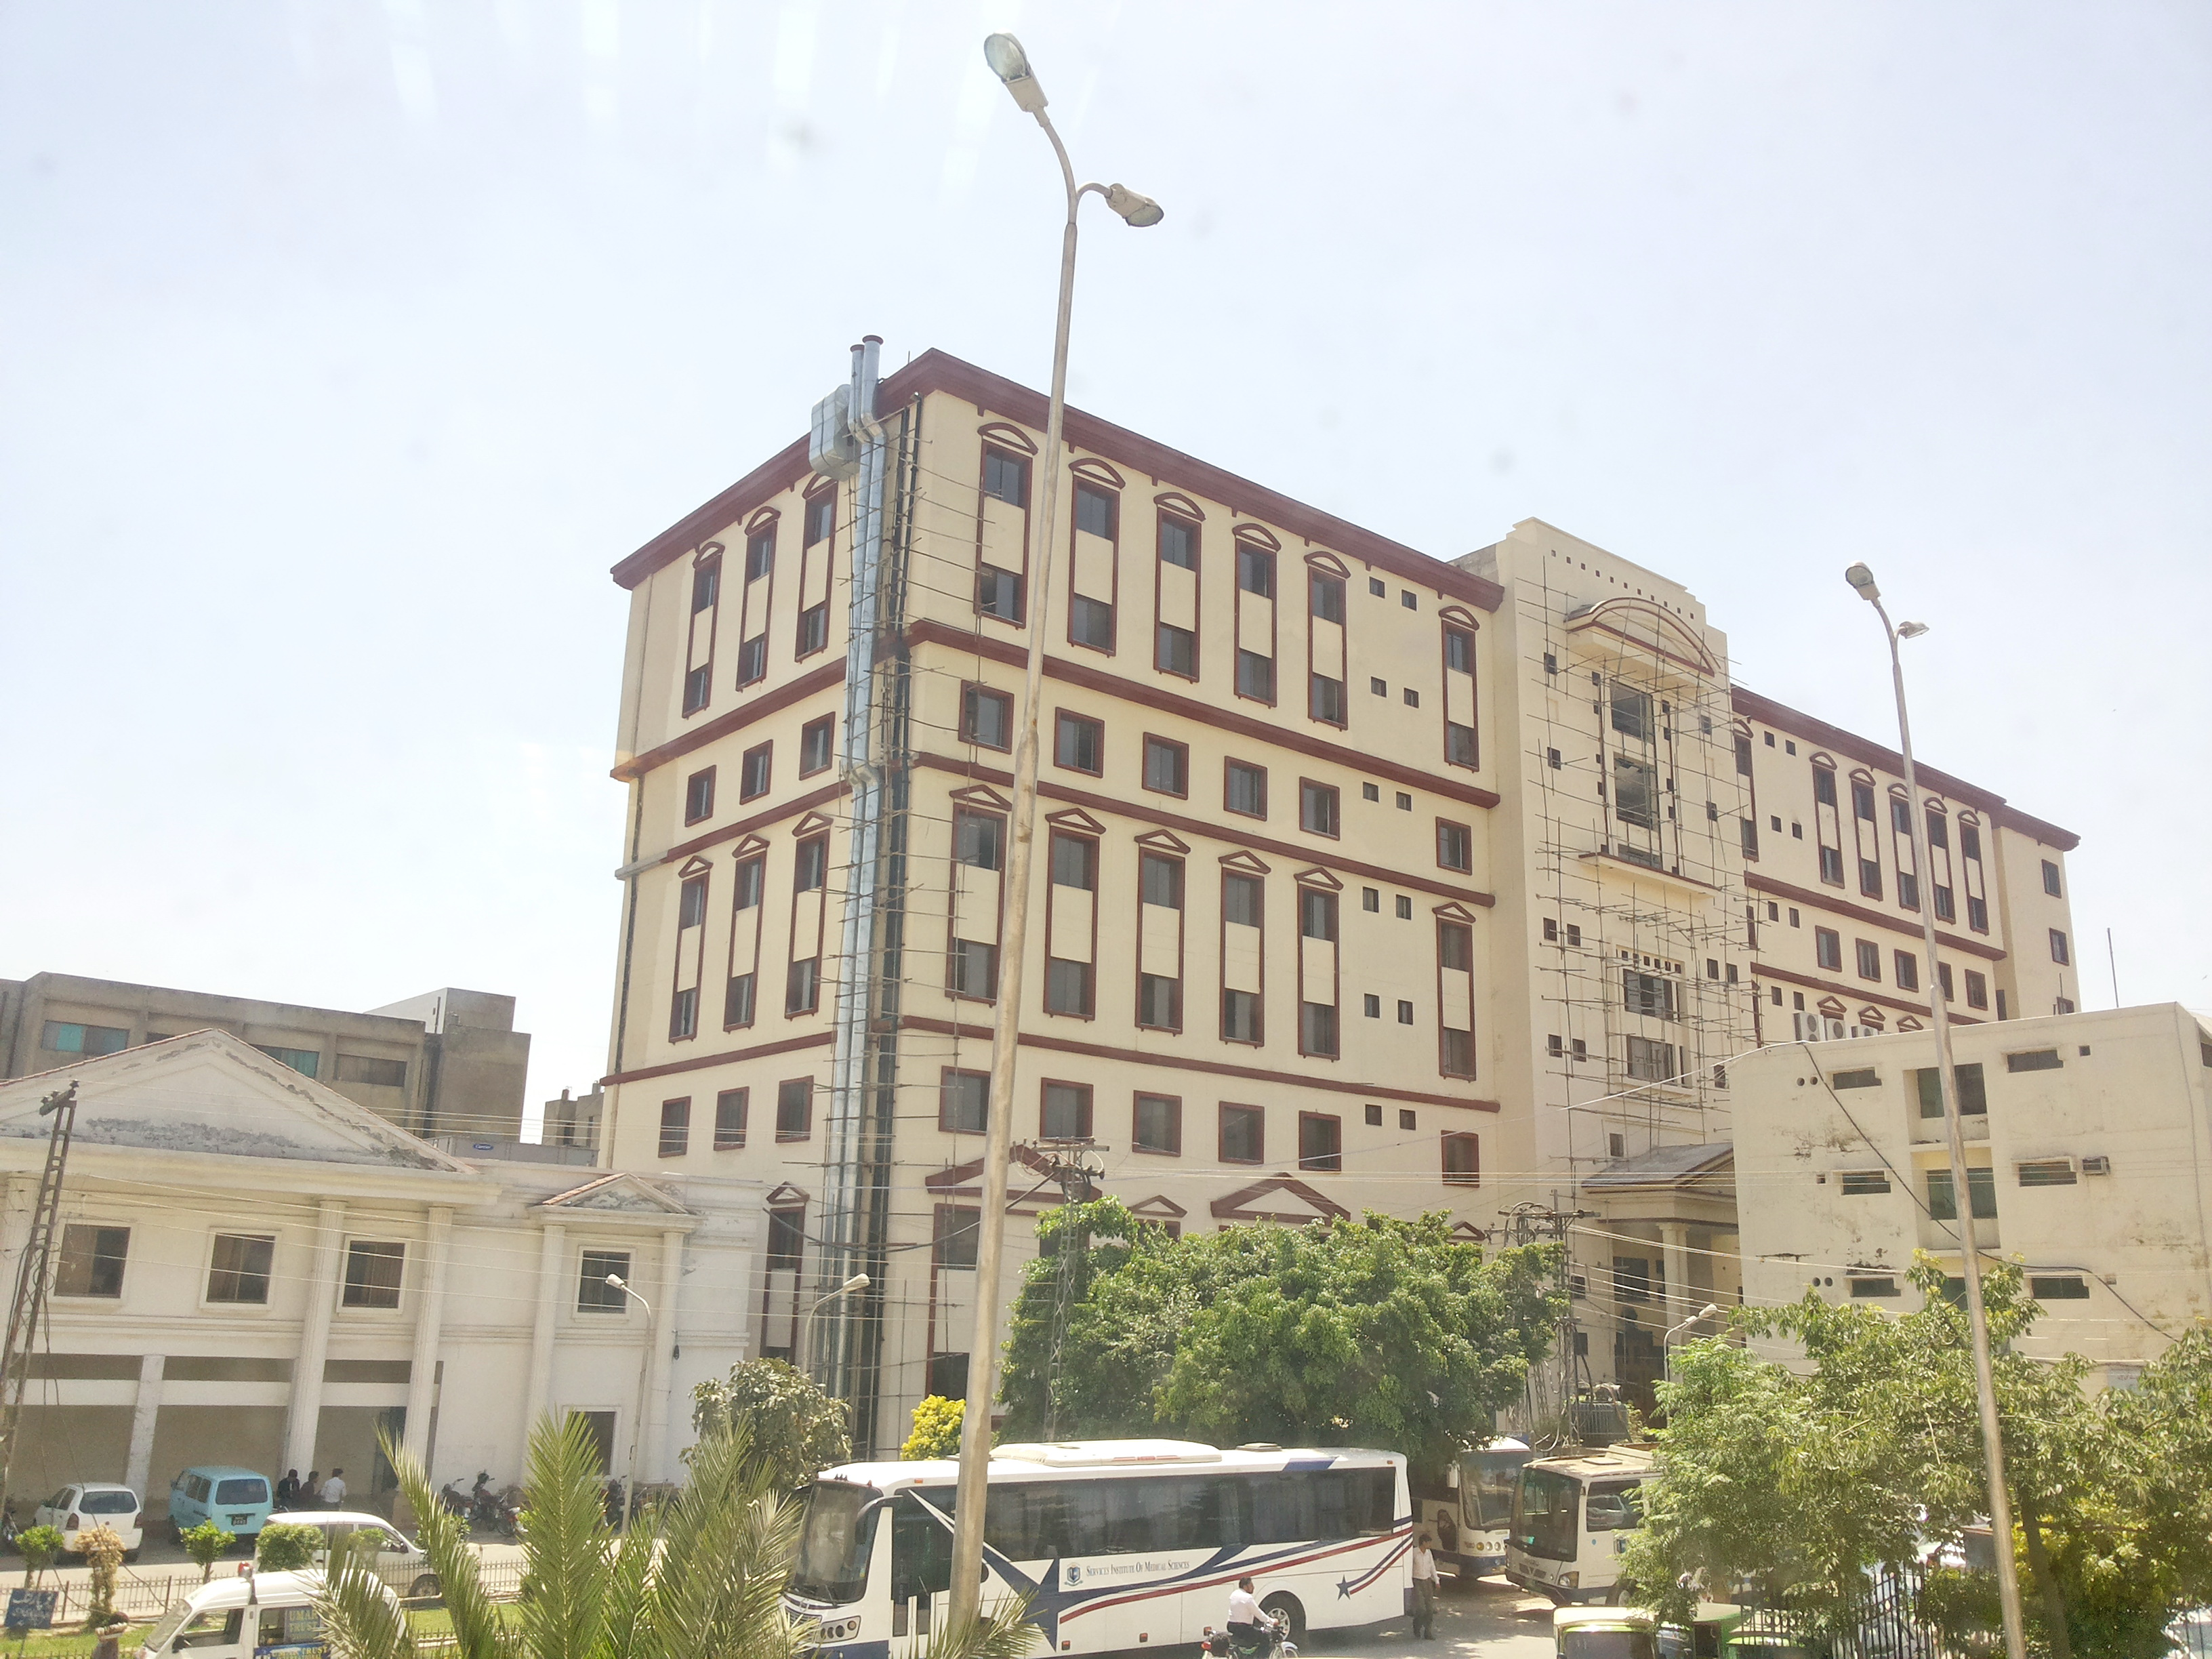 Services Hospital - Wikipedia